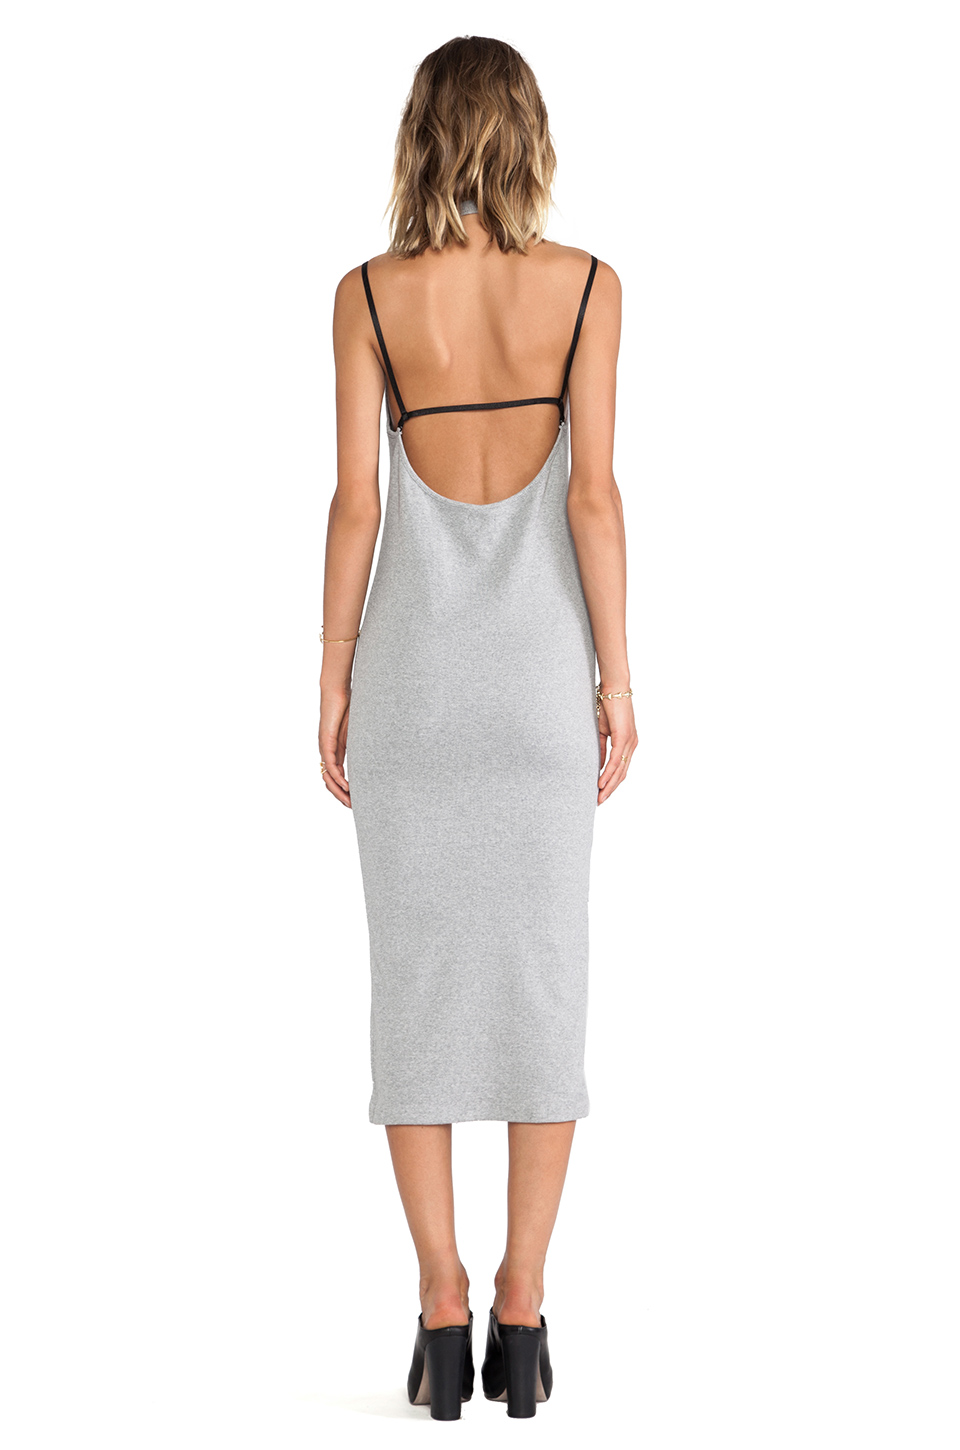 Cheap Monday Back Dress in Grey Melange | REVOLVE